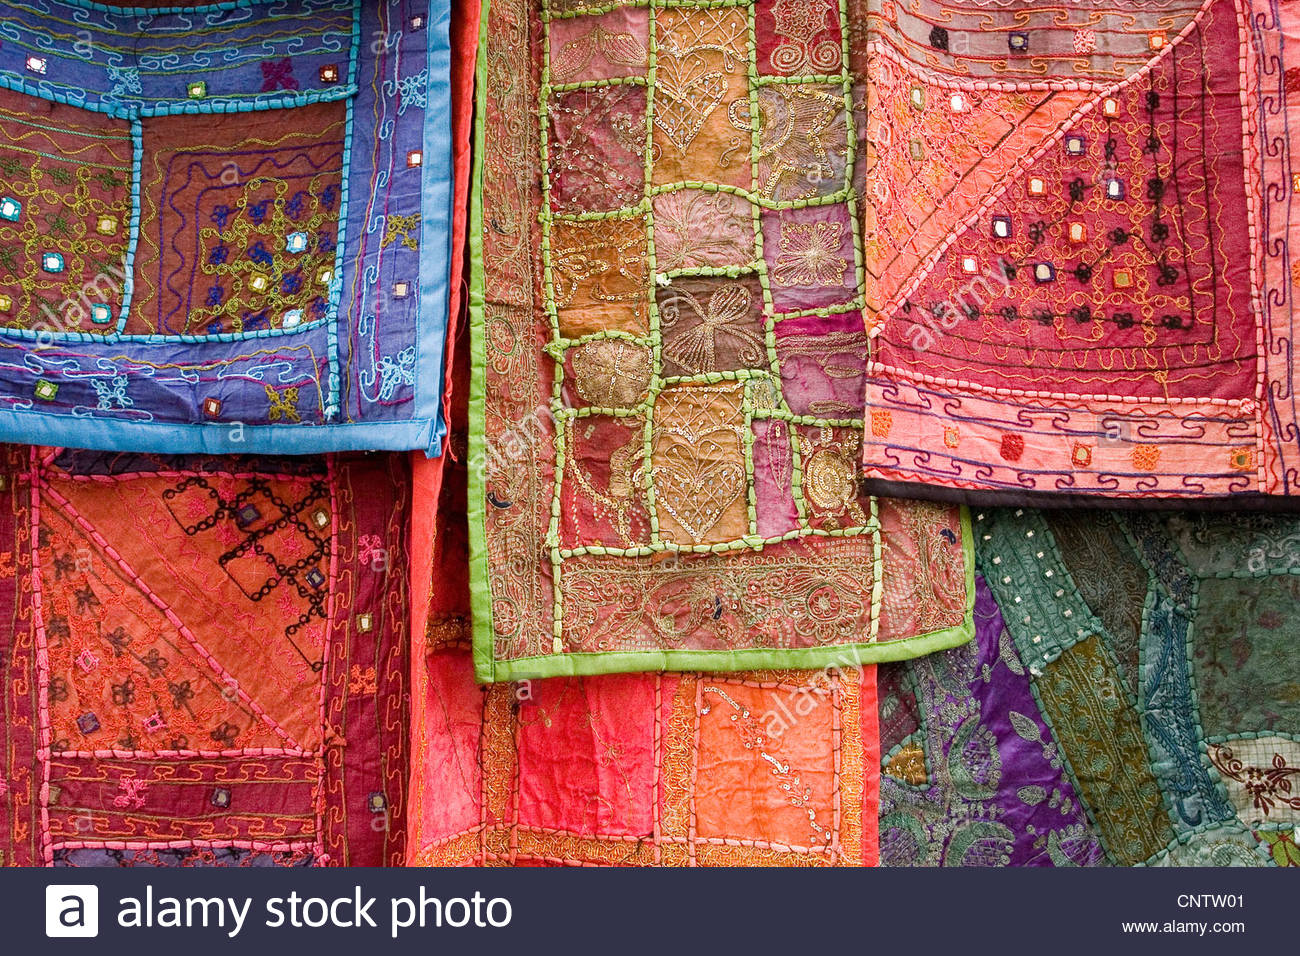 Ornate tapestries hanging together Stock Photo